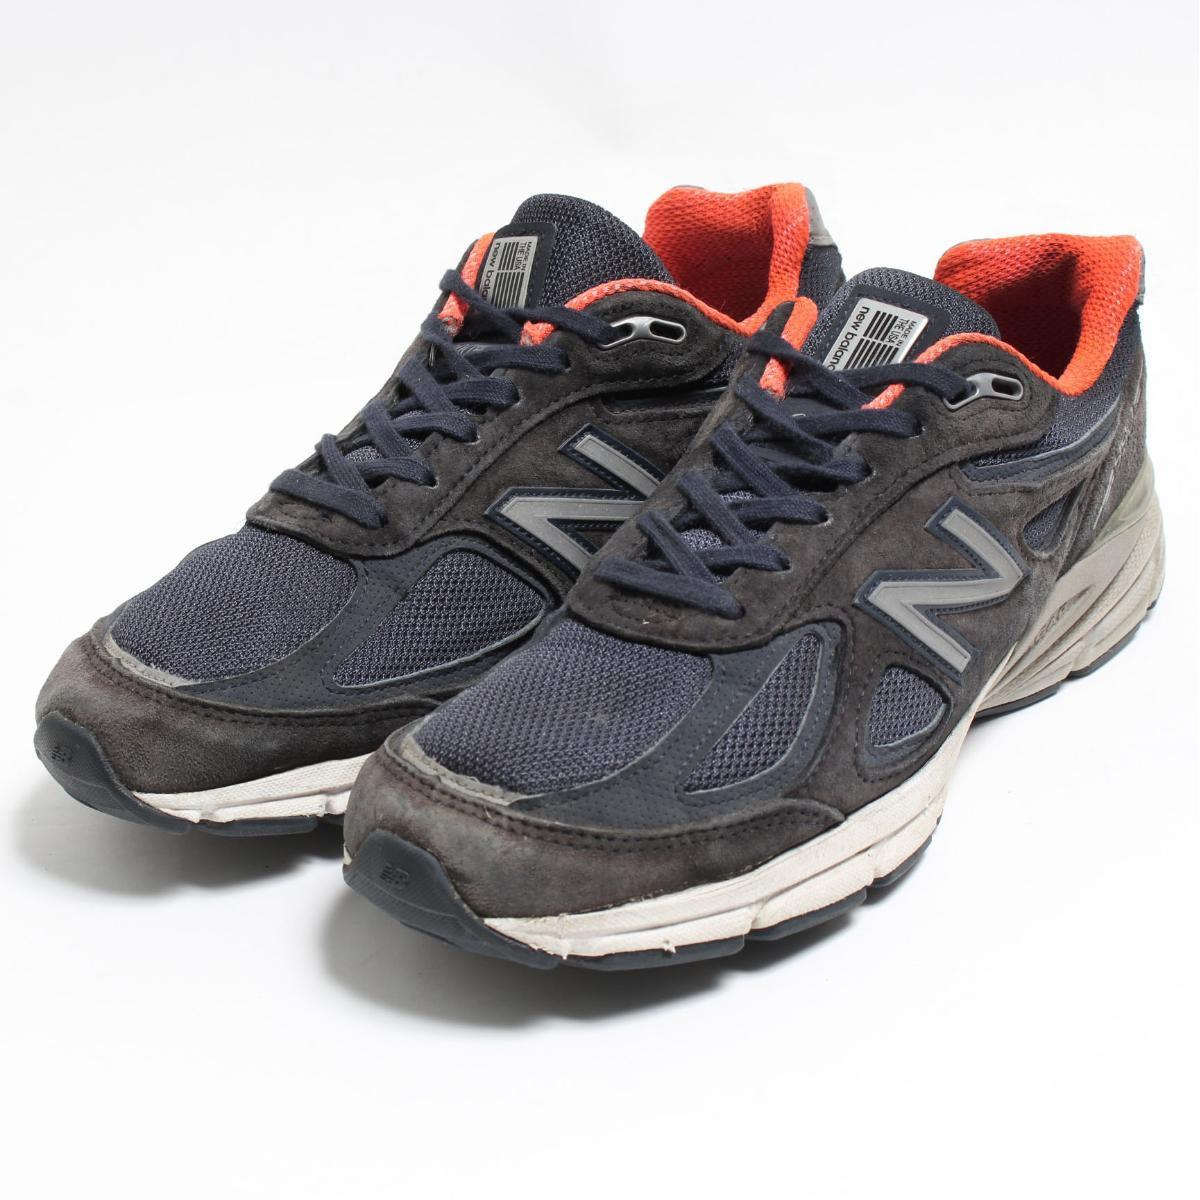 vintage new balance sneakers Sale,up to